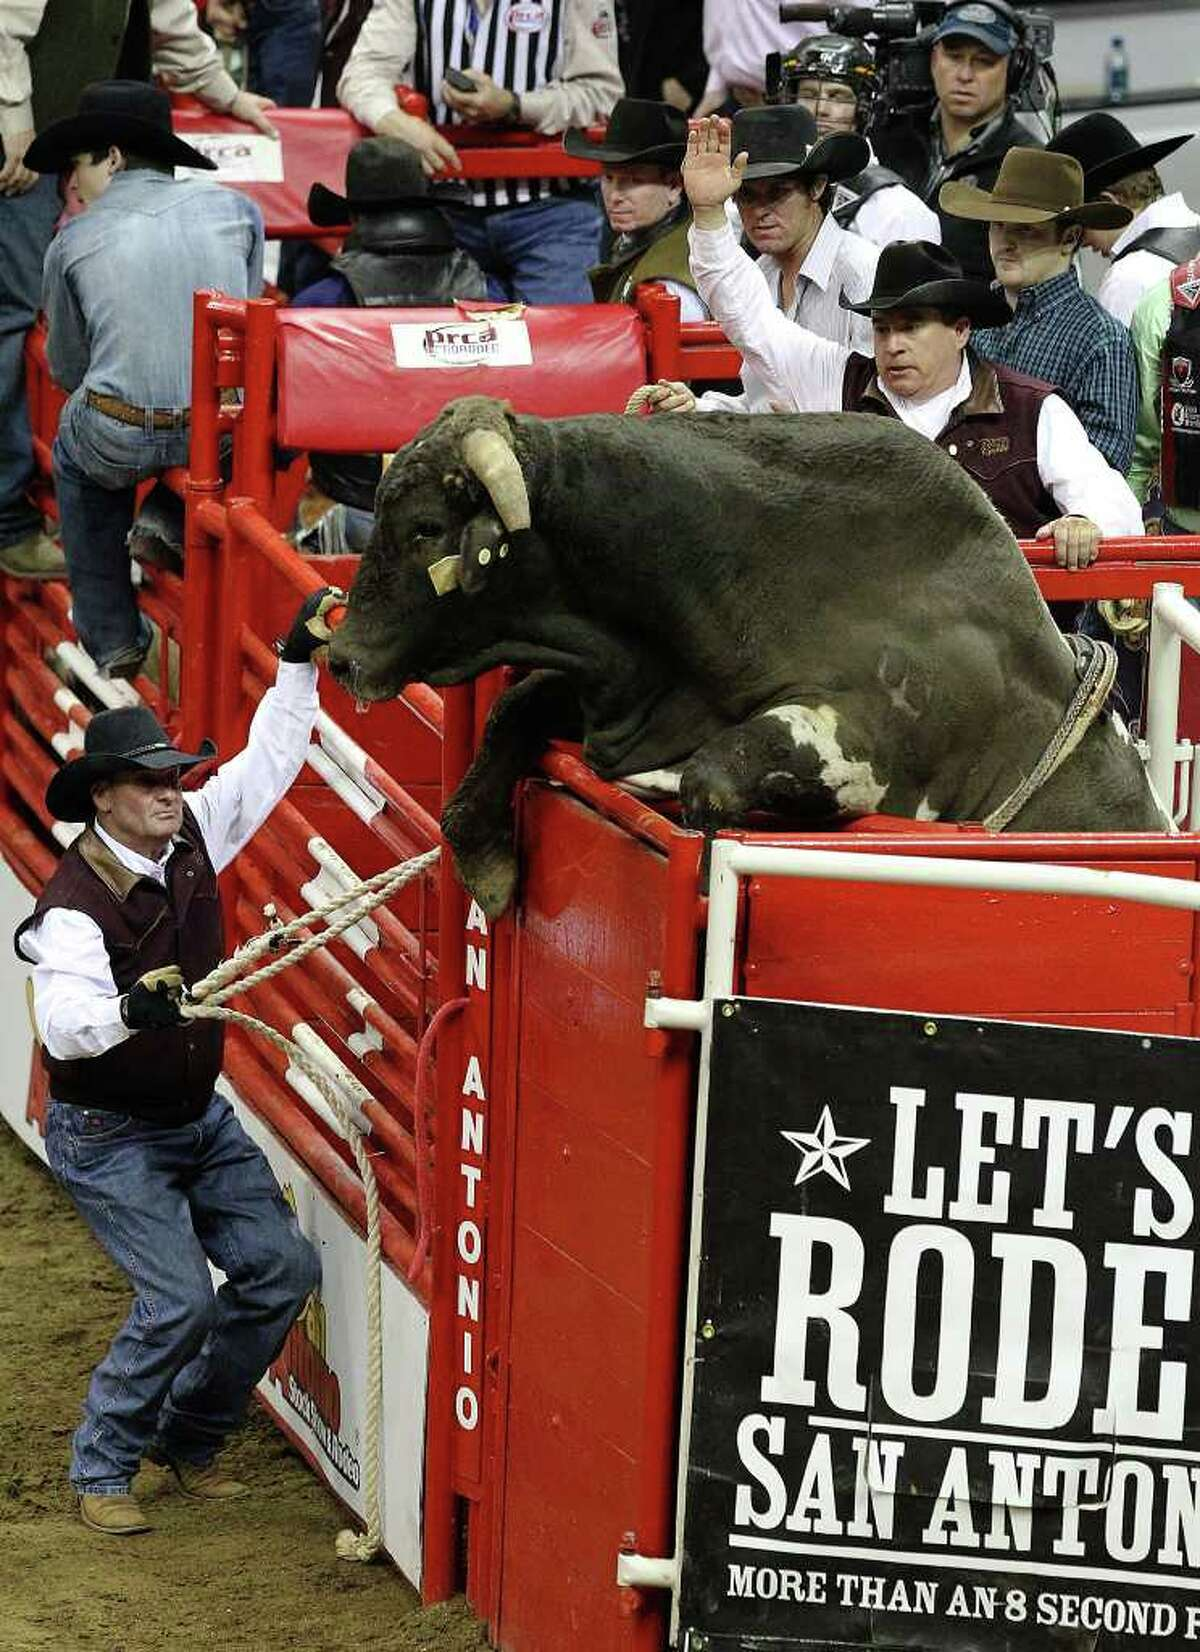 A bull jumps atop the alley on the way to a chute during the bull riding competition at the 2011 San Antonio Stock Show & Rodeo on Tuesday, Feb. 15, 2011. Kin Man Hui/kmhui@express-news.net